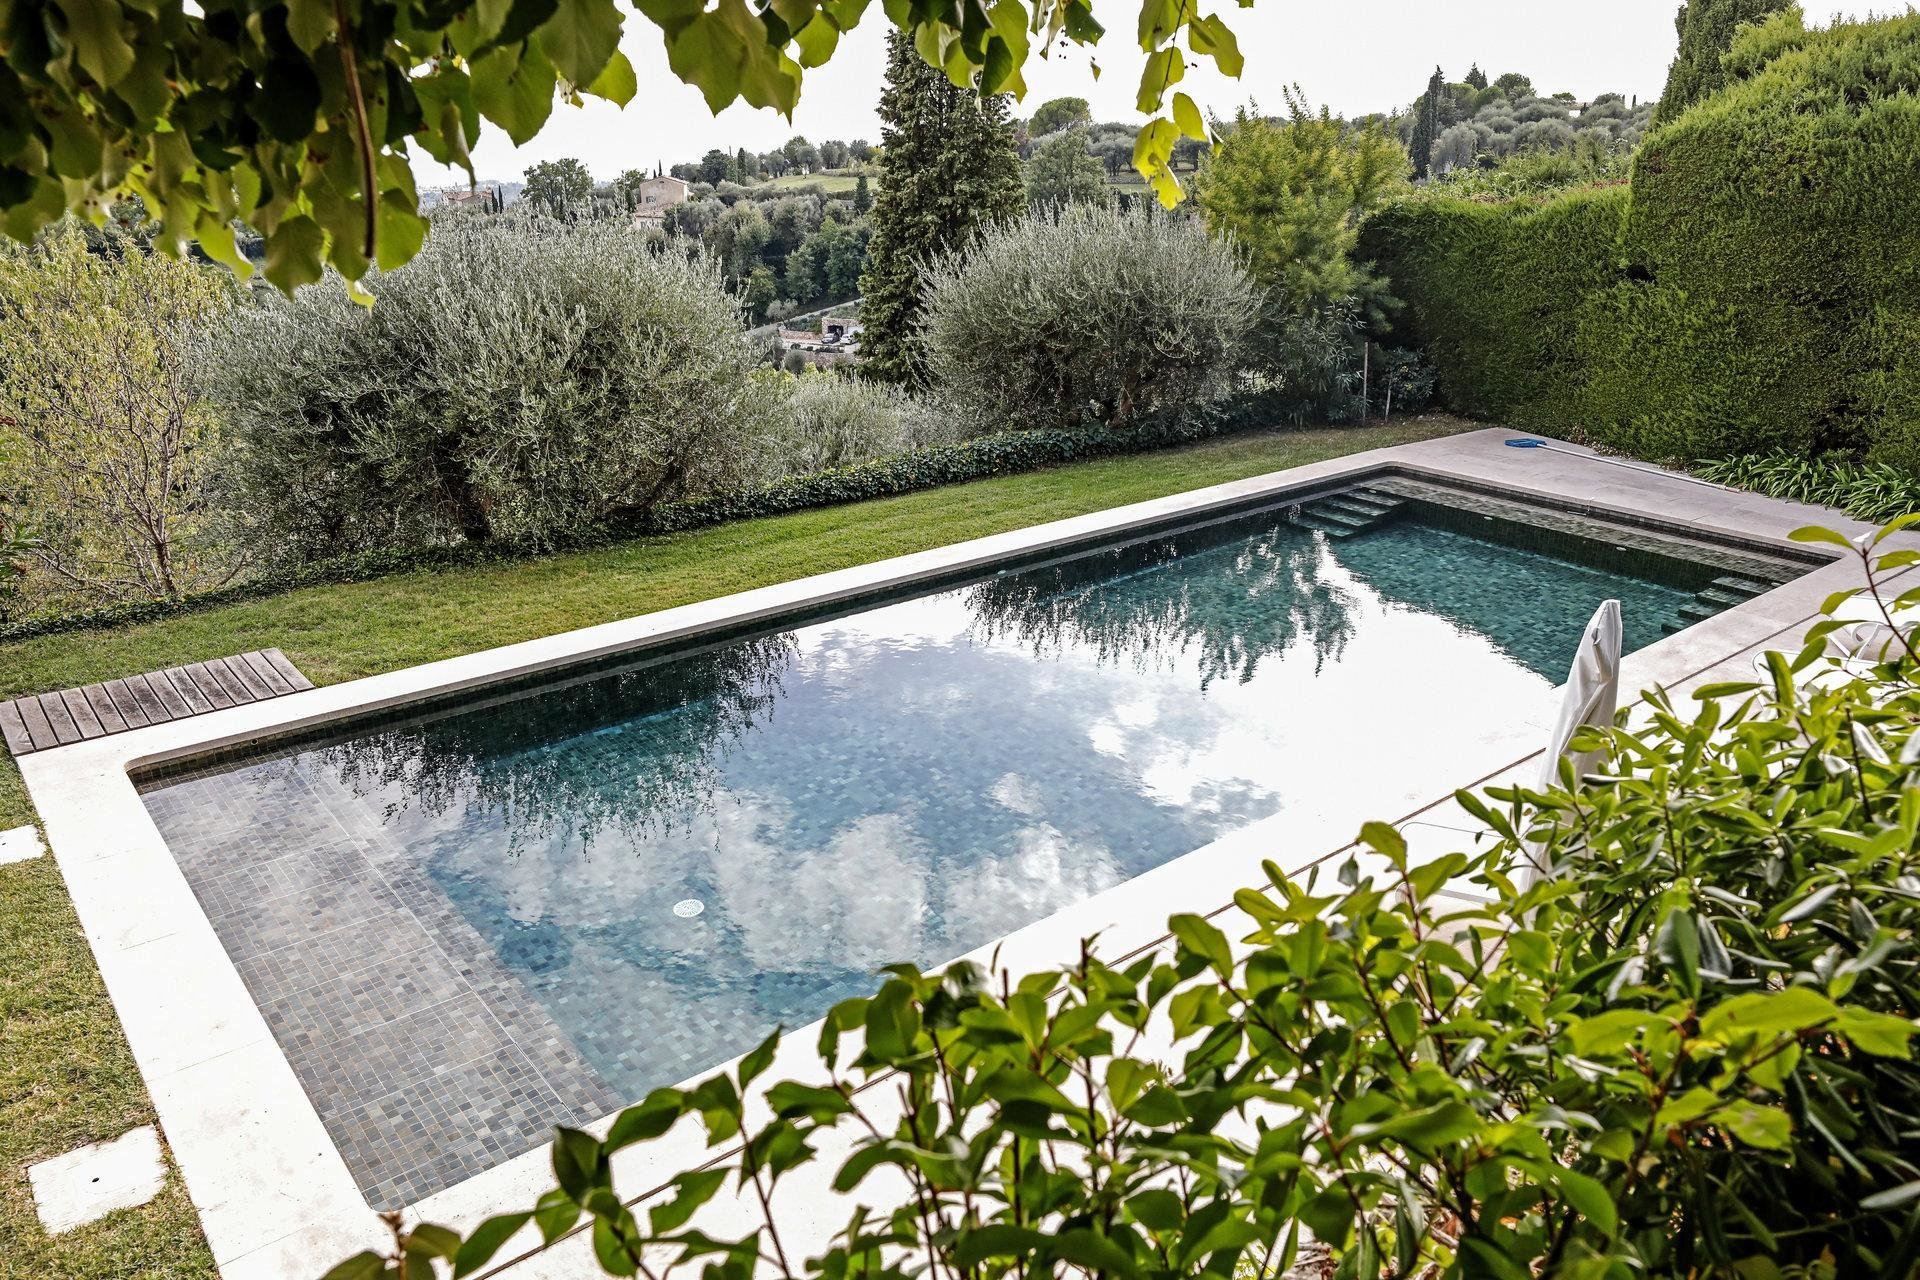 luxury villa in south france with pool and garden with view of mountains